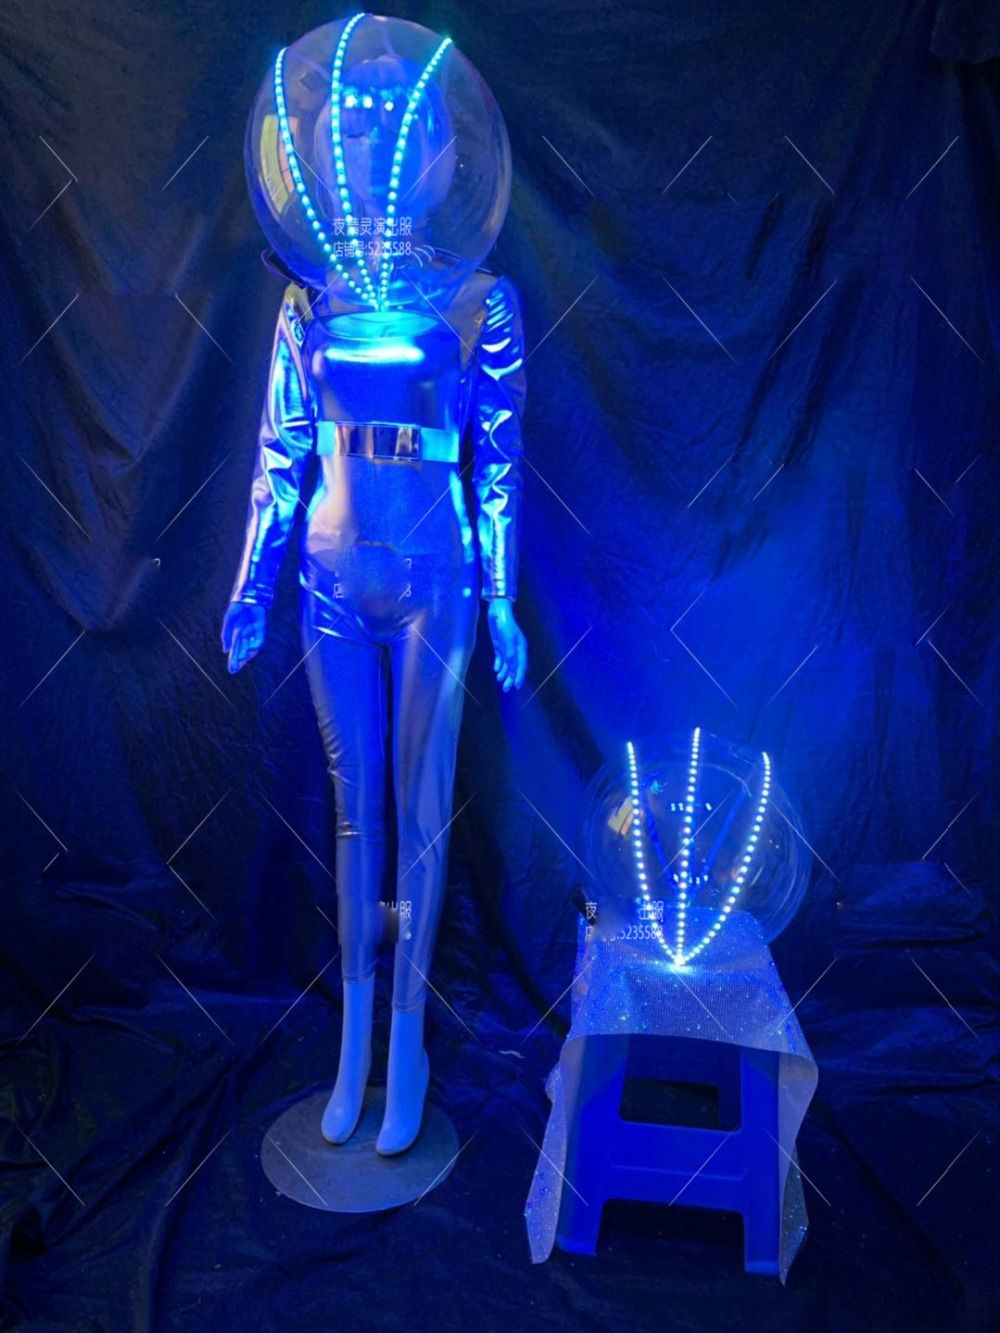 Lumious Space Warrior Helmet Costume DS DJ Gogo Party Stage Show Future Technology Nightclub Cosplay Light Up Headwear